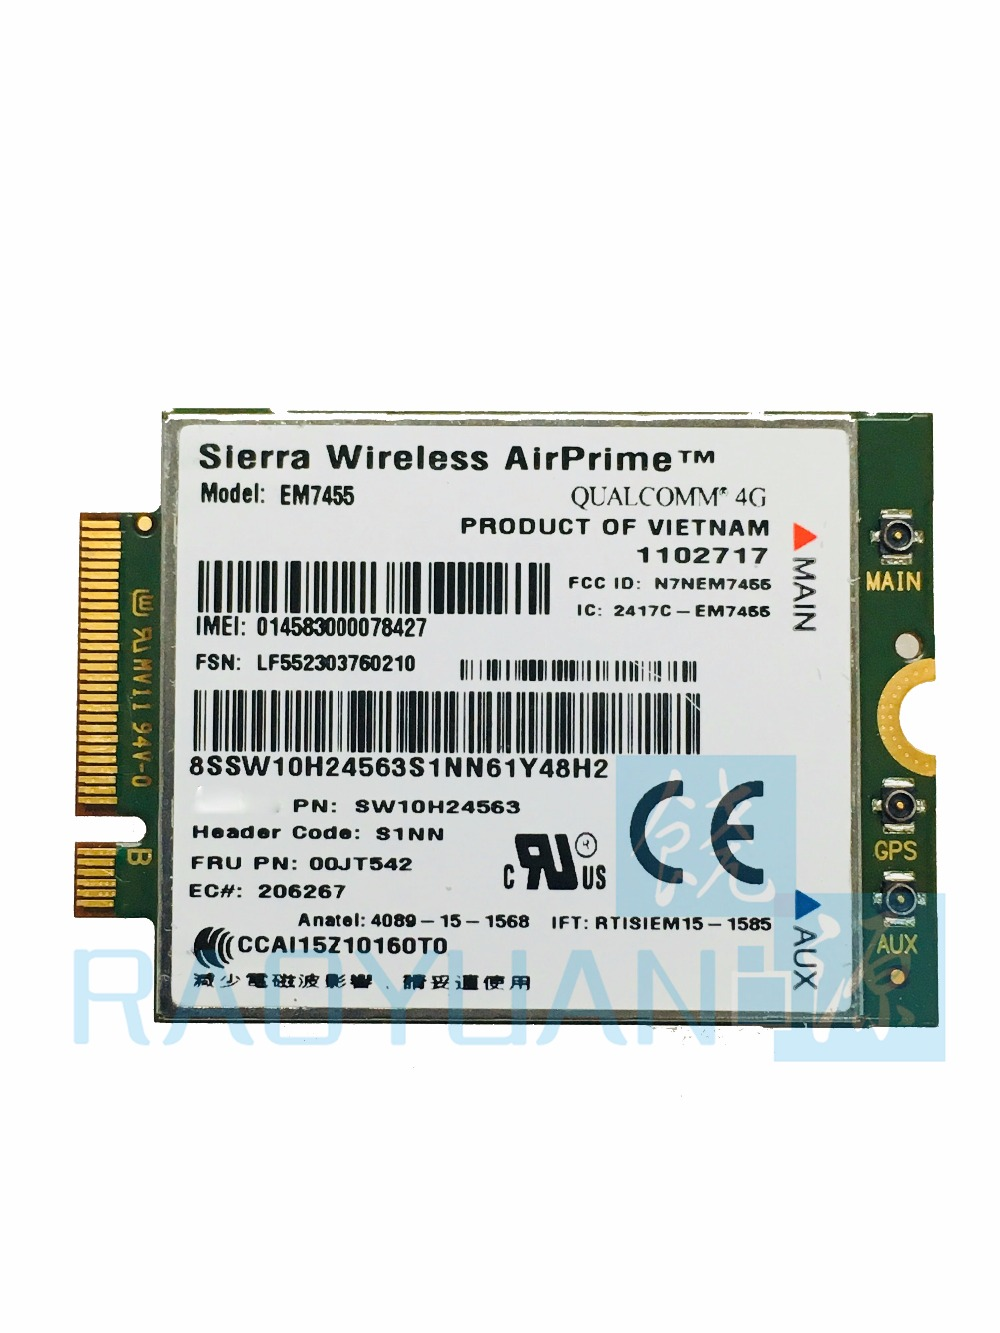 цена на 4G LTE WWAN CARD for Sierra Wireless Airprime EM7455 GOBI6000 QUALCOMM FRU:00JT542 For Lenovo X260 T460 P50 P70 L560 X1+Antenna